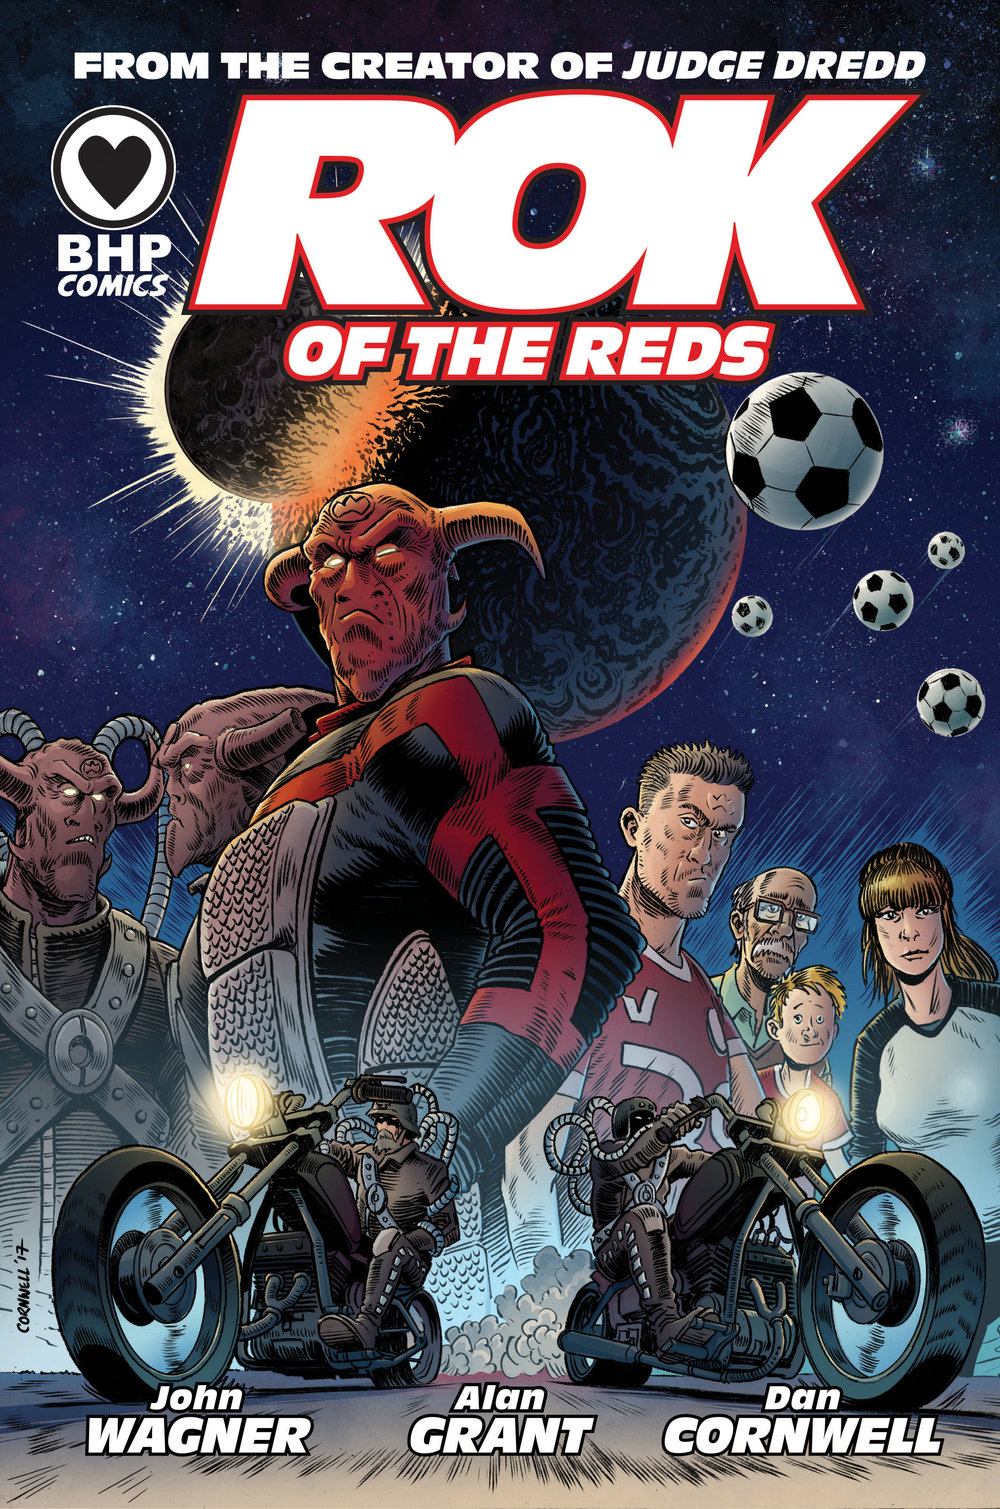 Rok of the Reds  - BHP Comics are thrilled to announce that Rok of the Reds, the sci-fi adventure written by comics legends John Wagner and Alan Grant with art by Dan Cornwell, will be collected into a new trade paperback edition. The trade will bring together all six single issues of the mini-series plus never before seen bonus material.  The Rok of the Reds trade is available for preorder here and will be released on the 16th of April 2018! 'A blistering opener and sustained momentum throughout has made Rok of the Reds a surprise package in pretty much every way'- Comics Anonymous'A black comedy about revenge, redemption and the 'beautiful game', Rok of the Reds is one of the best independent comics out there right now.'- Down the Tubes